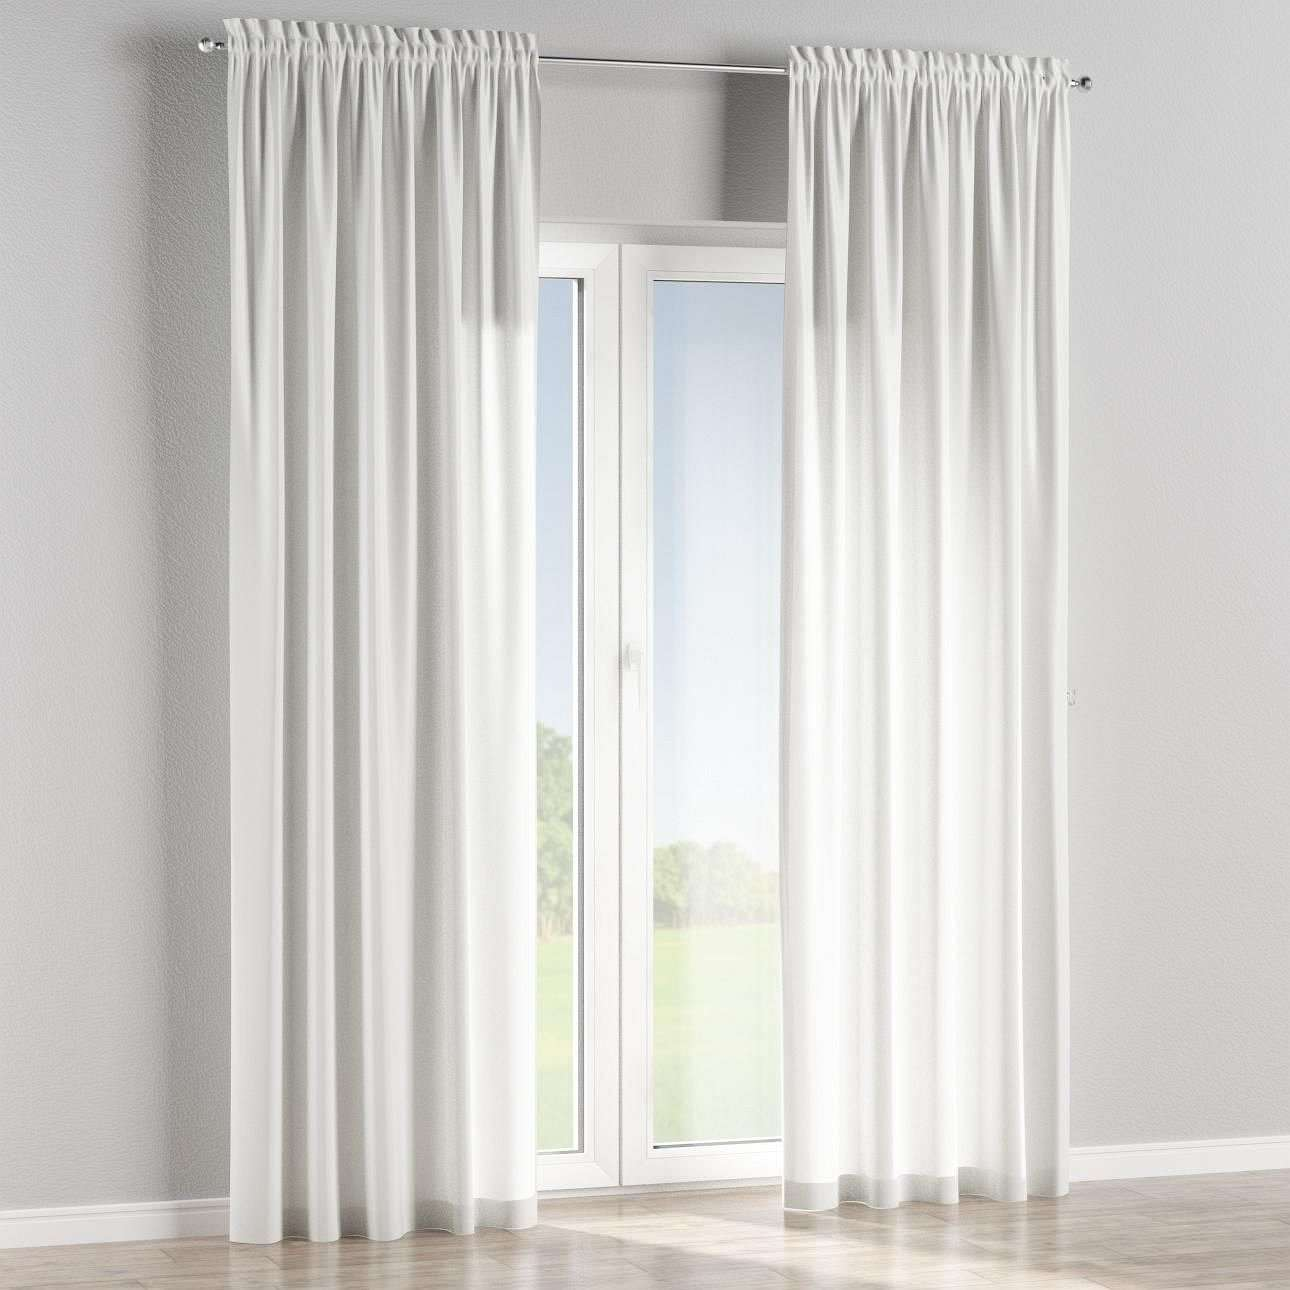 Slot and frill lined curtains in collection Marina, fabric: 140-12